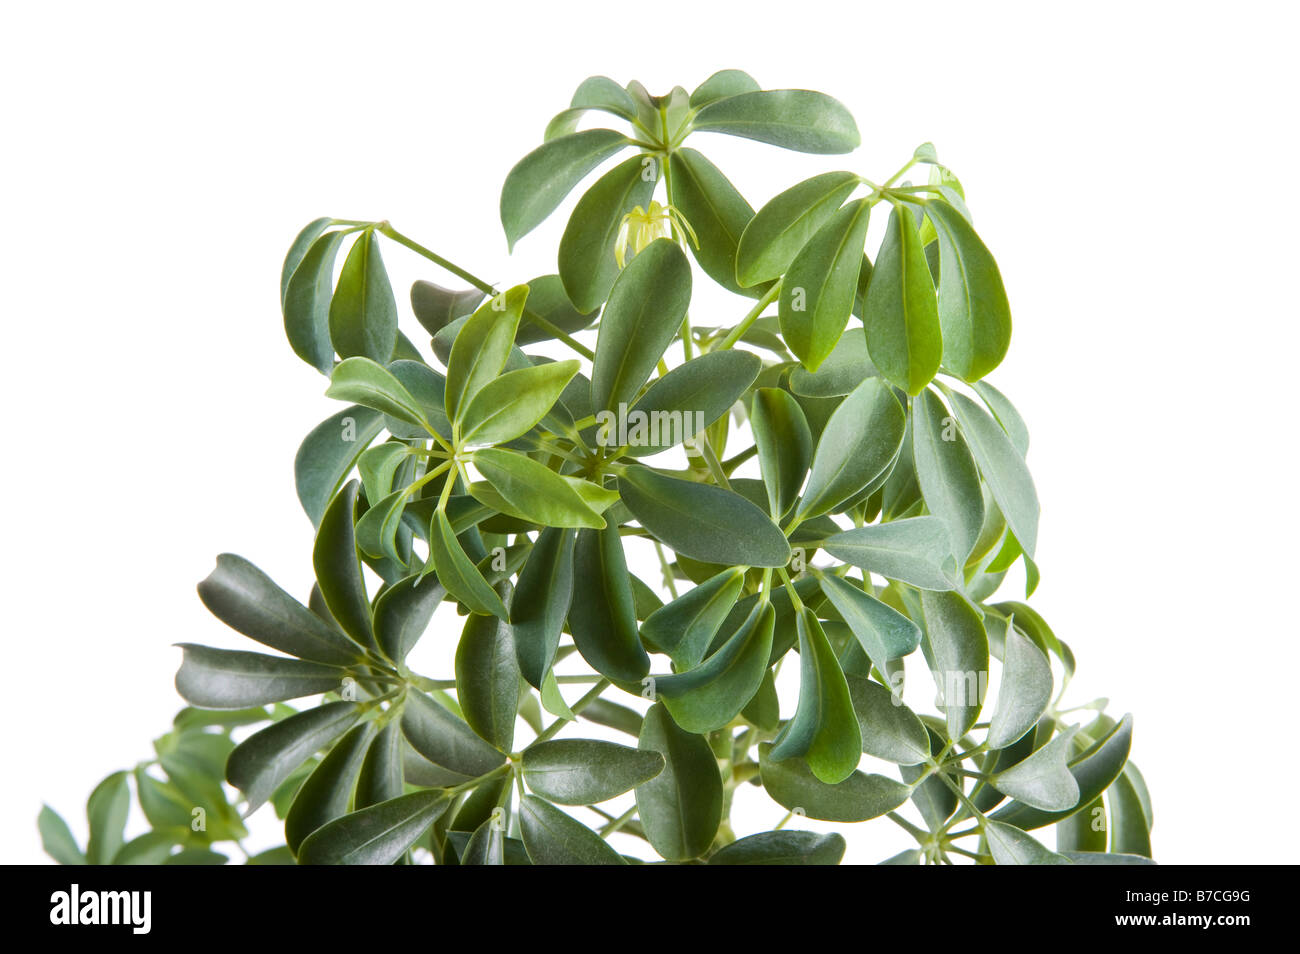 Object On White Flower Indoor Plants Closeup Stock Photo 21789196